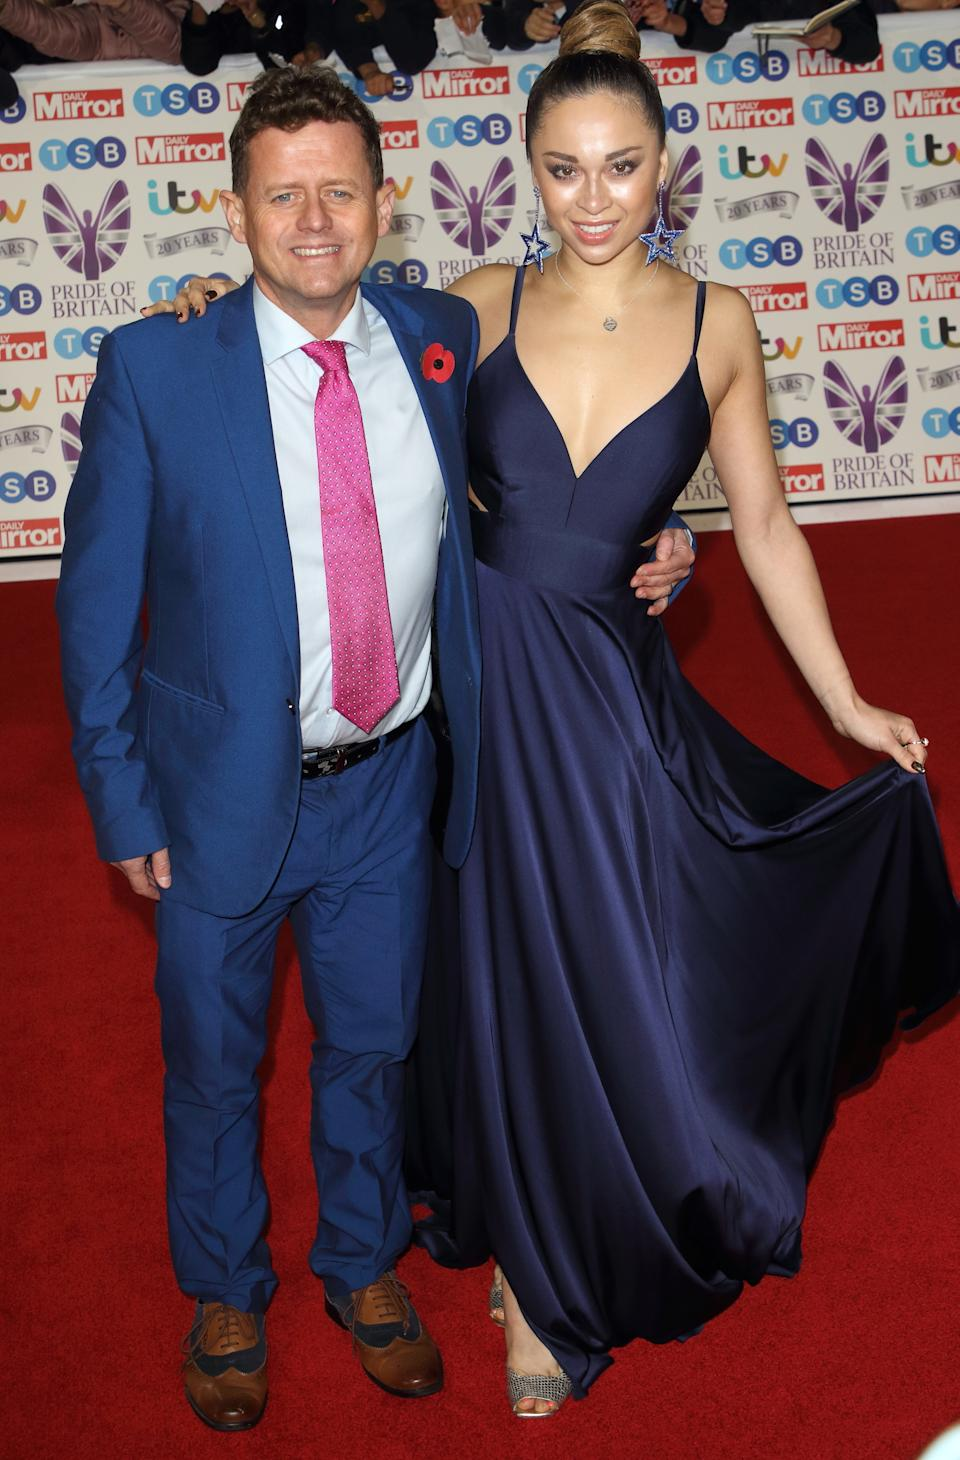 Mike Bushell and Katya Jones on the red carpet at The Daily Mirror Pride of Britain Awards, in partnership with TSB, at the Grosvenor House Hotel, Park Lane. (Photo by Keith Mayhew / SOPA Images/Sipa USA)